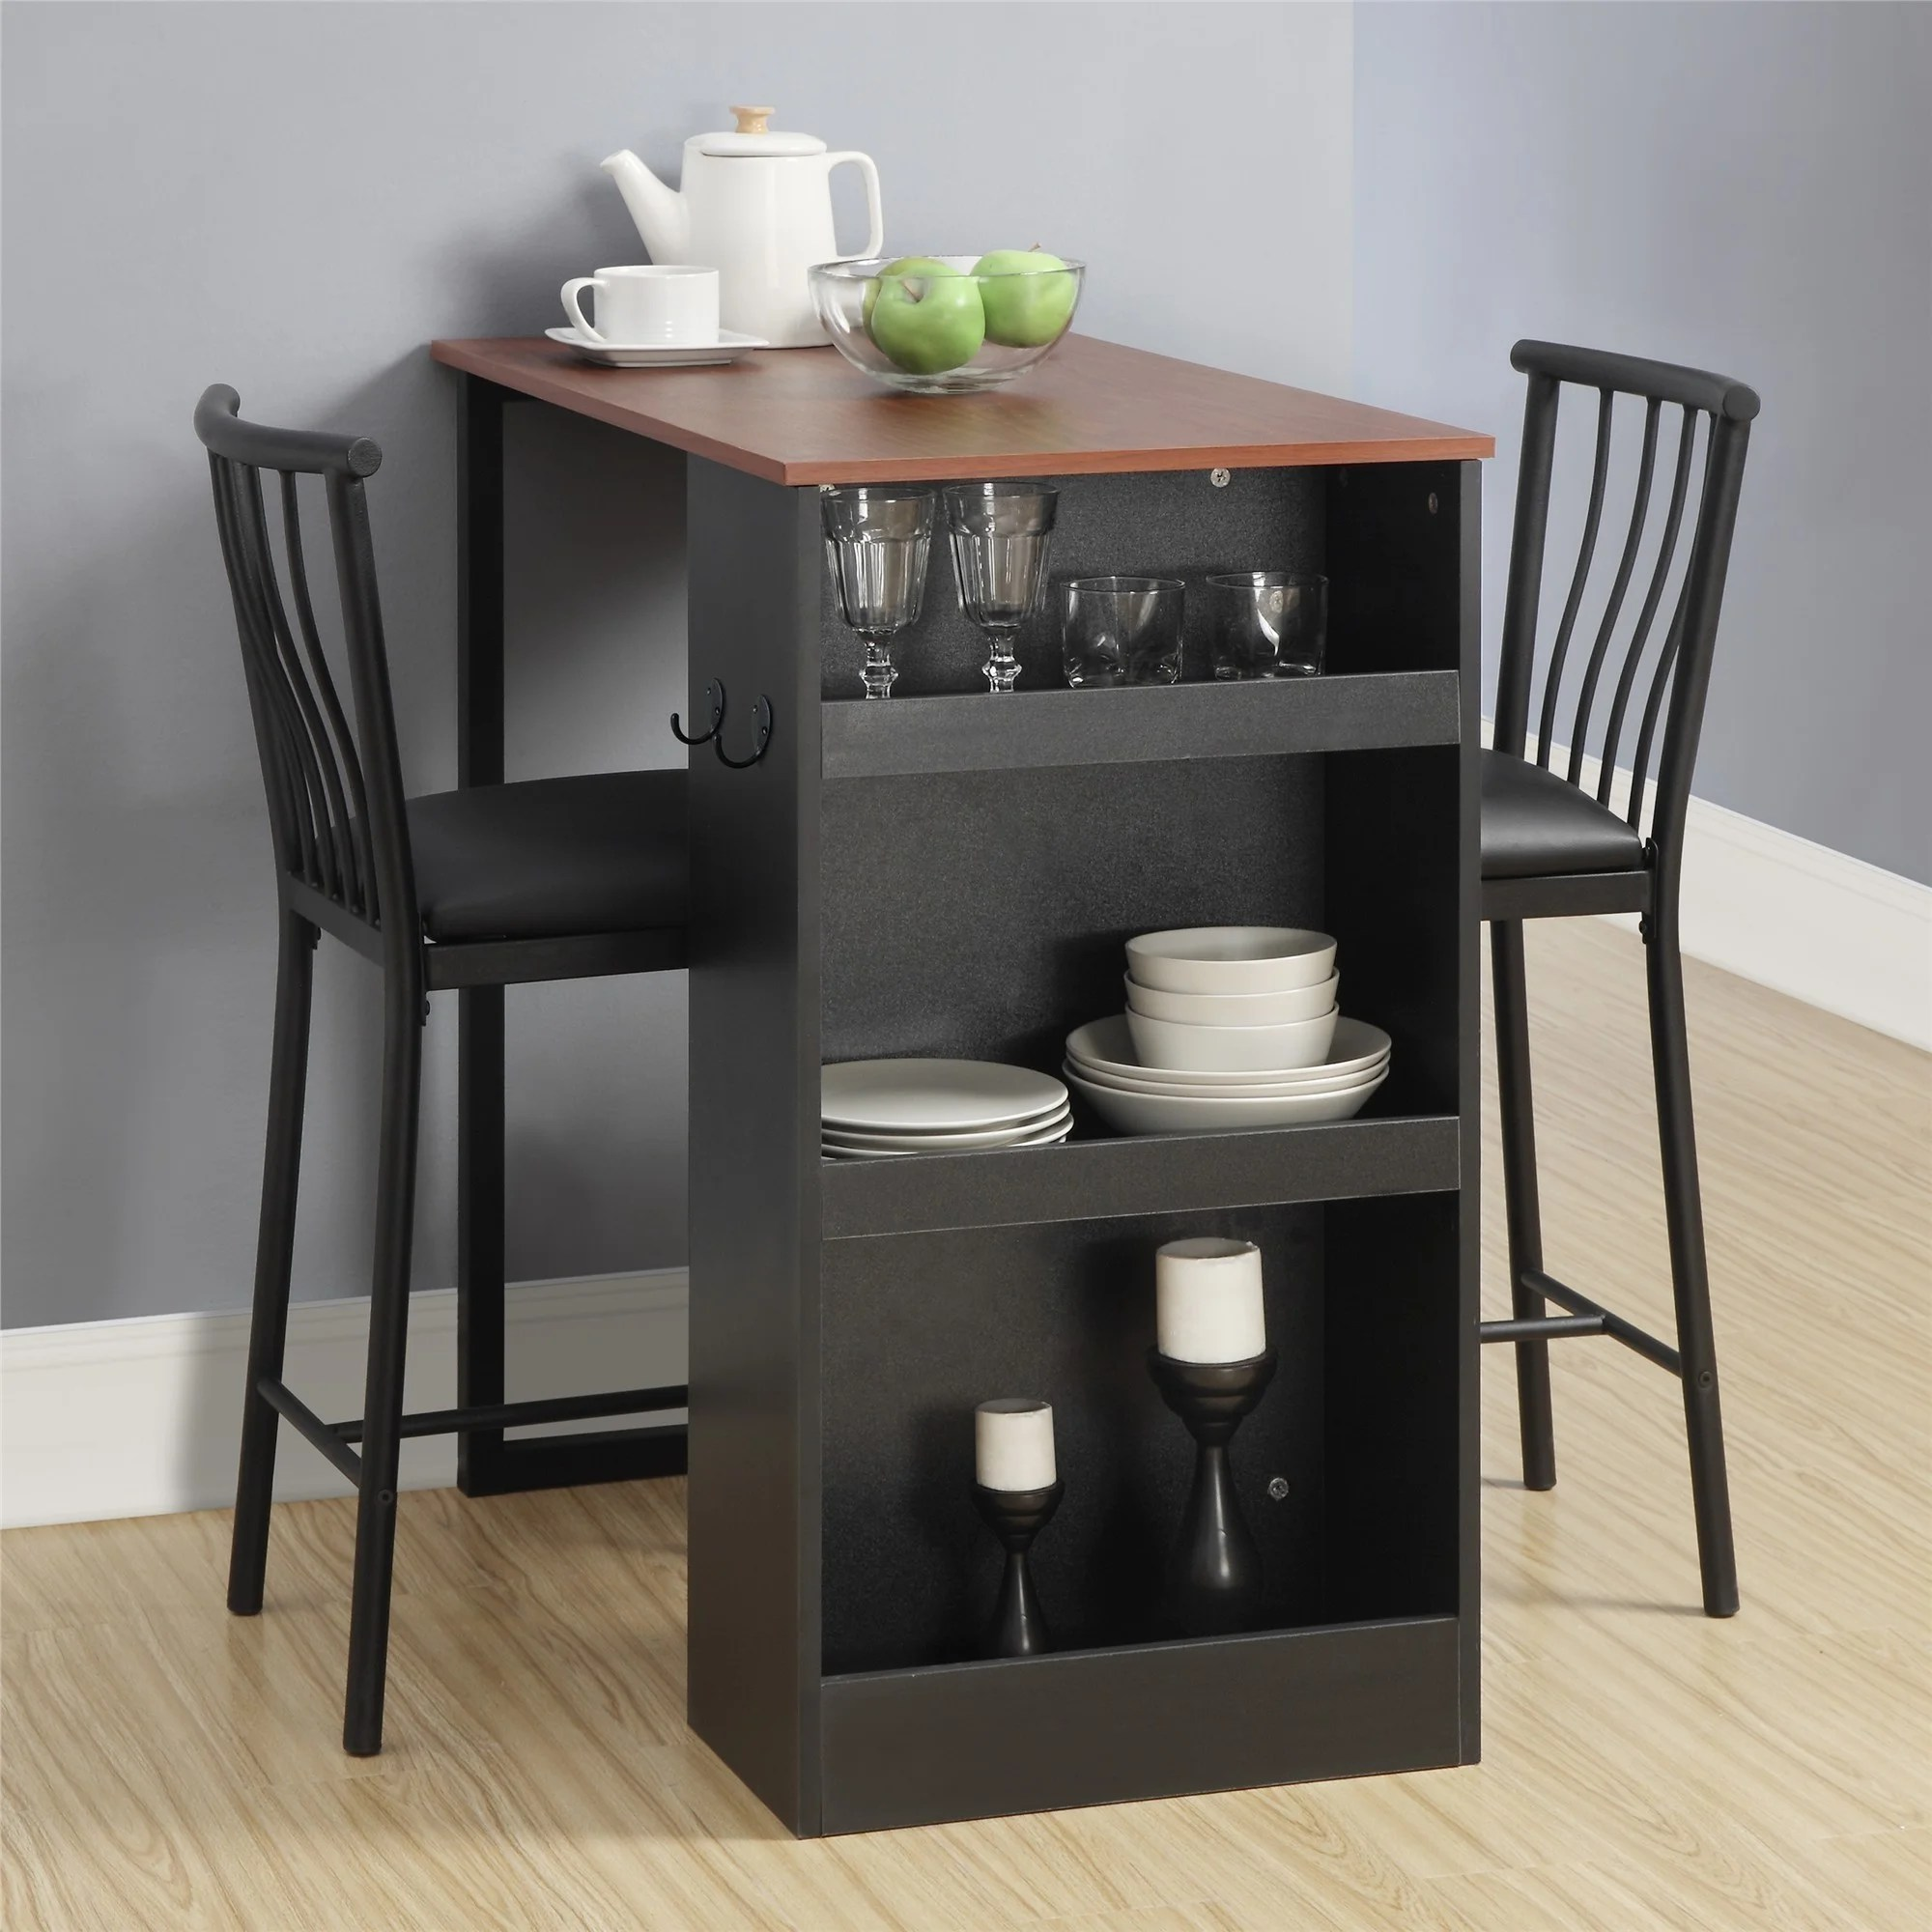 Bar Table With Chairs Buy Bar Pub Table Sets Online At Overstock Our Best Dining